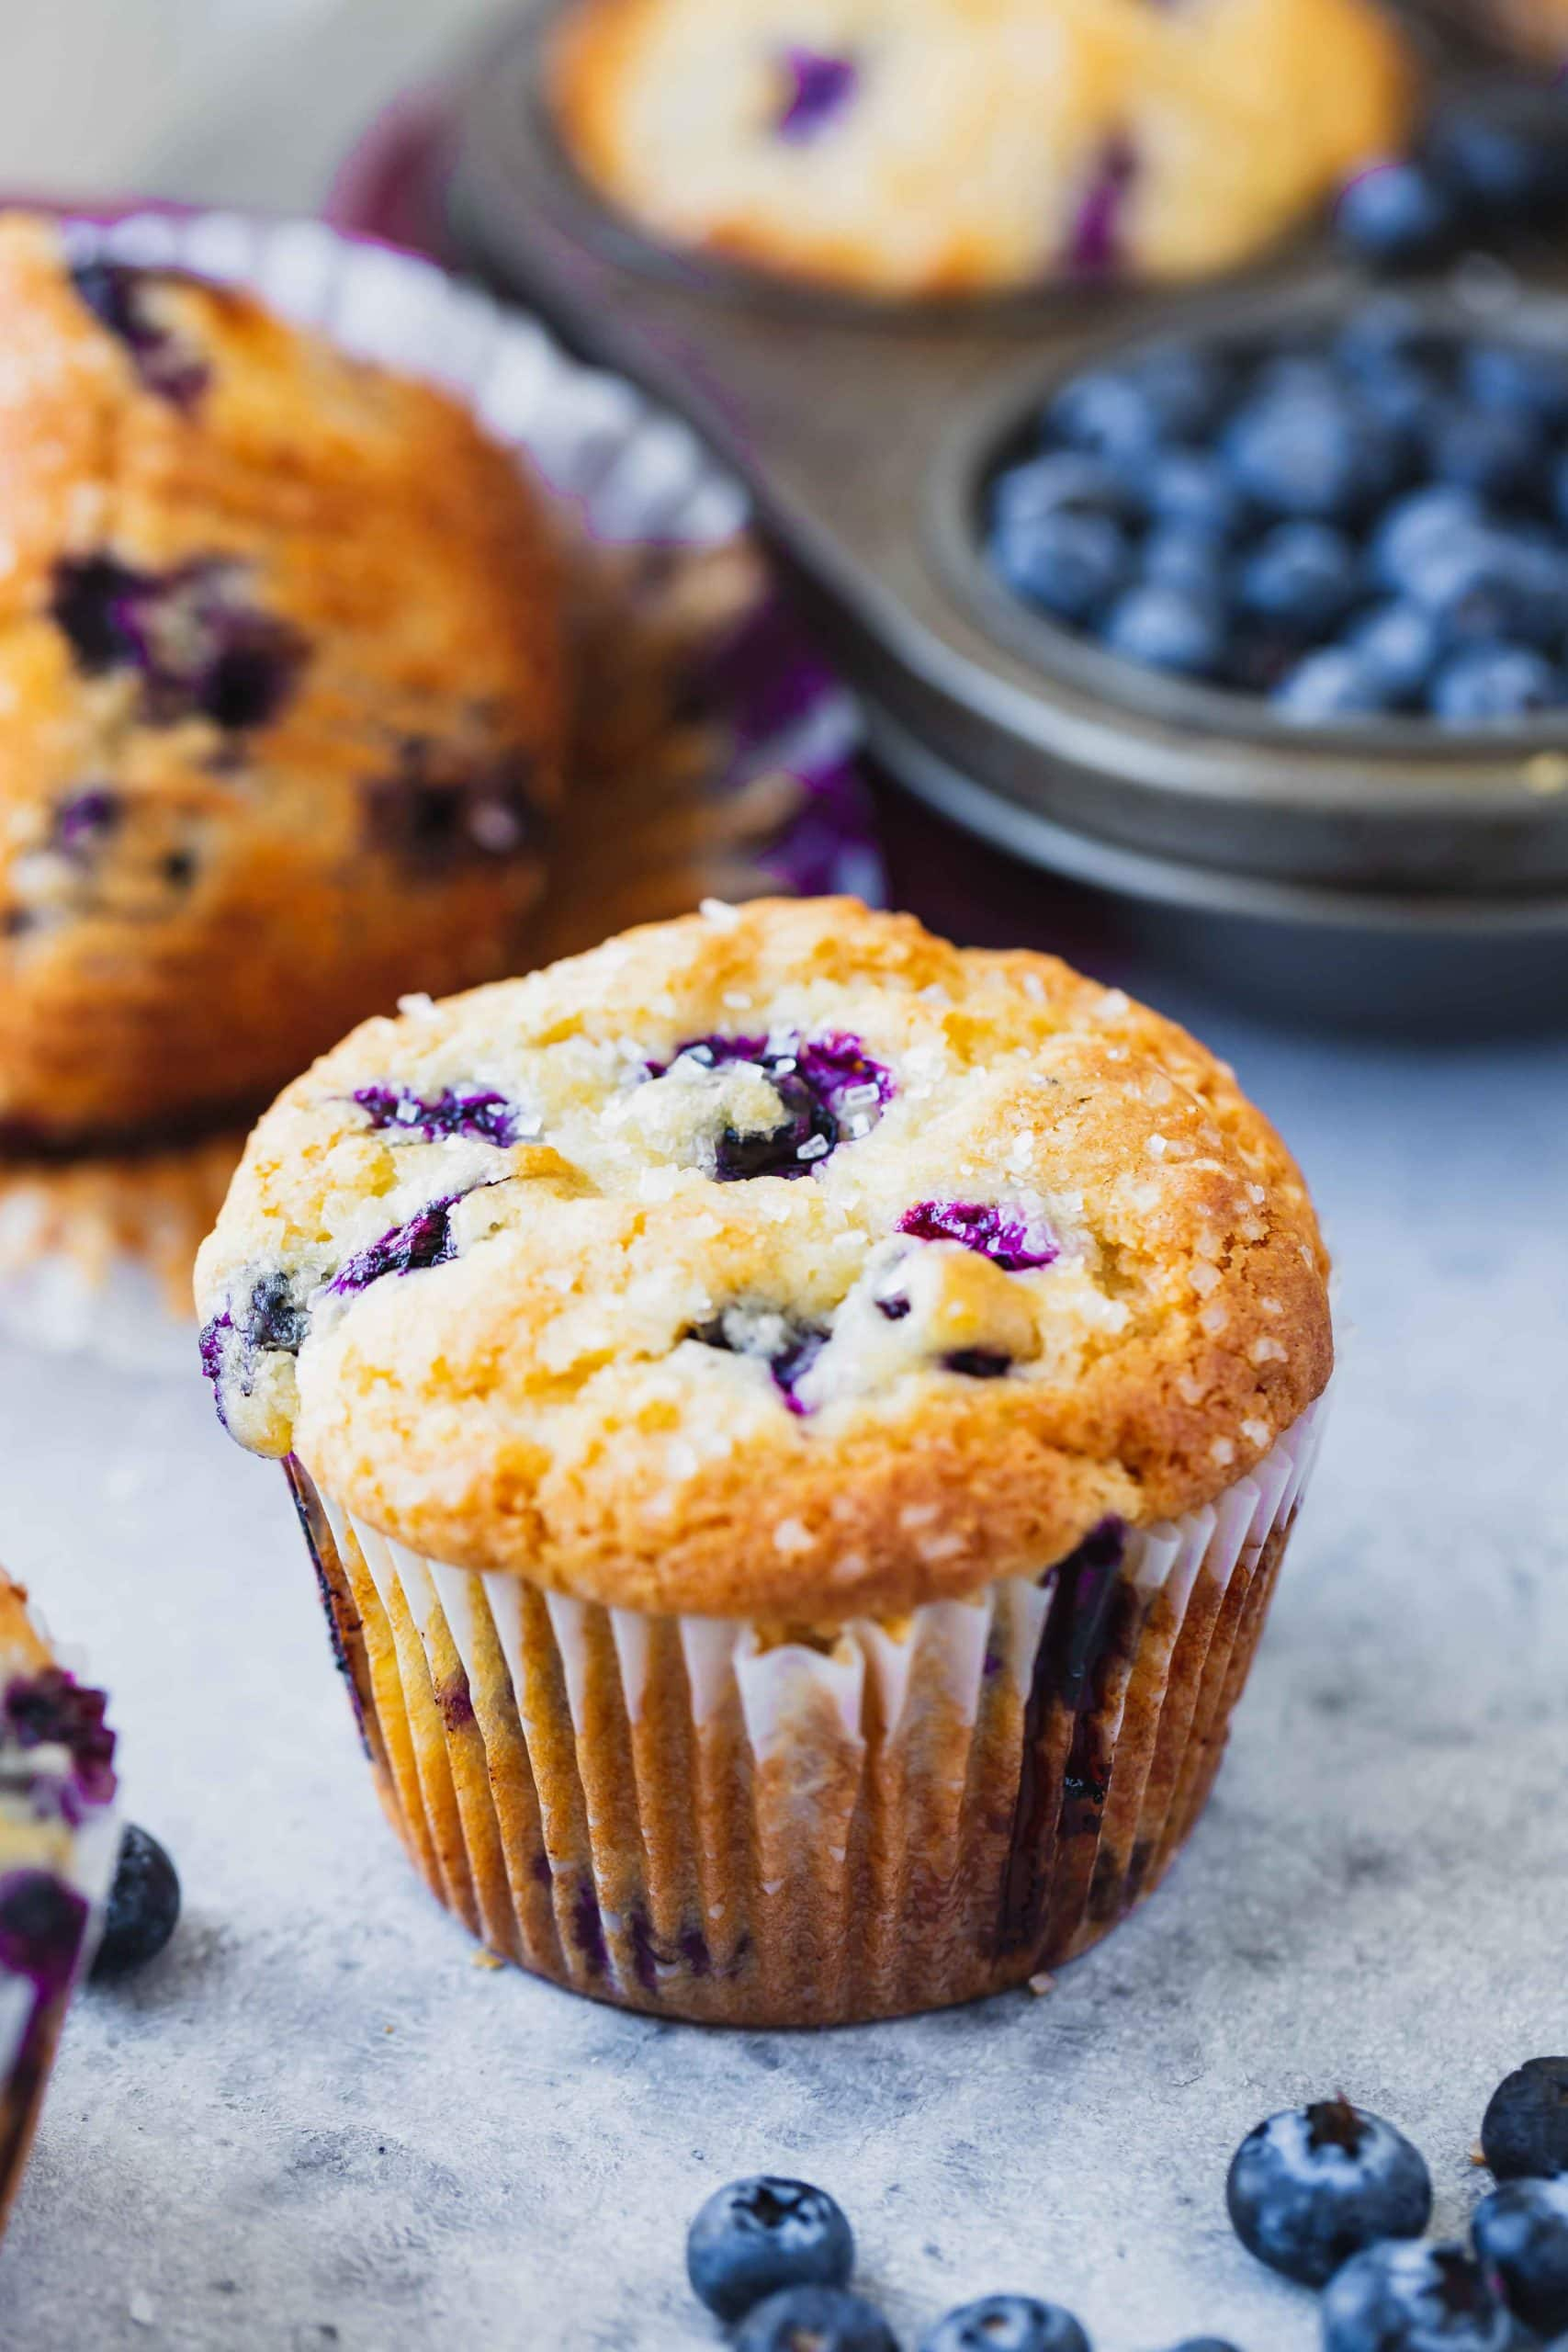 Two blueberry muffins baked to golden brown and filled with blueberries.  In the background is a frying pan filled with blueberries.